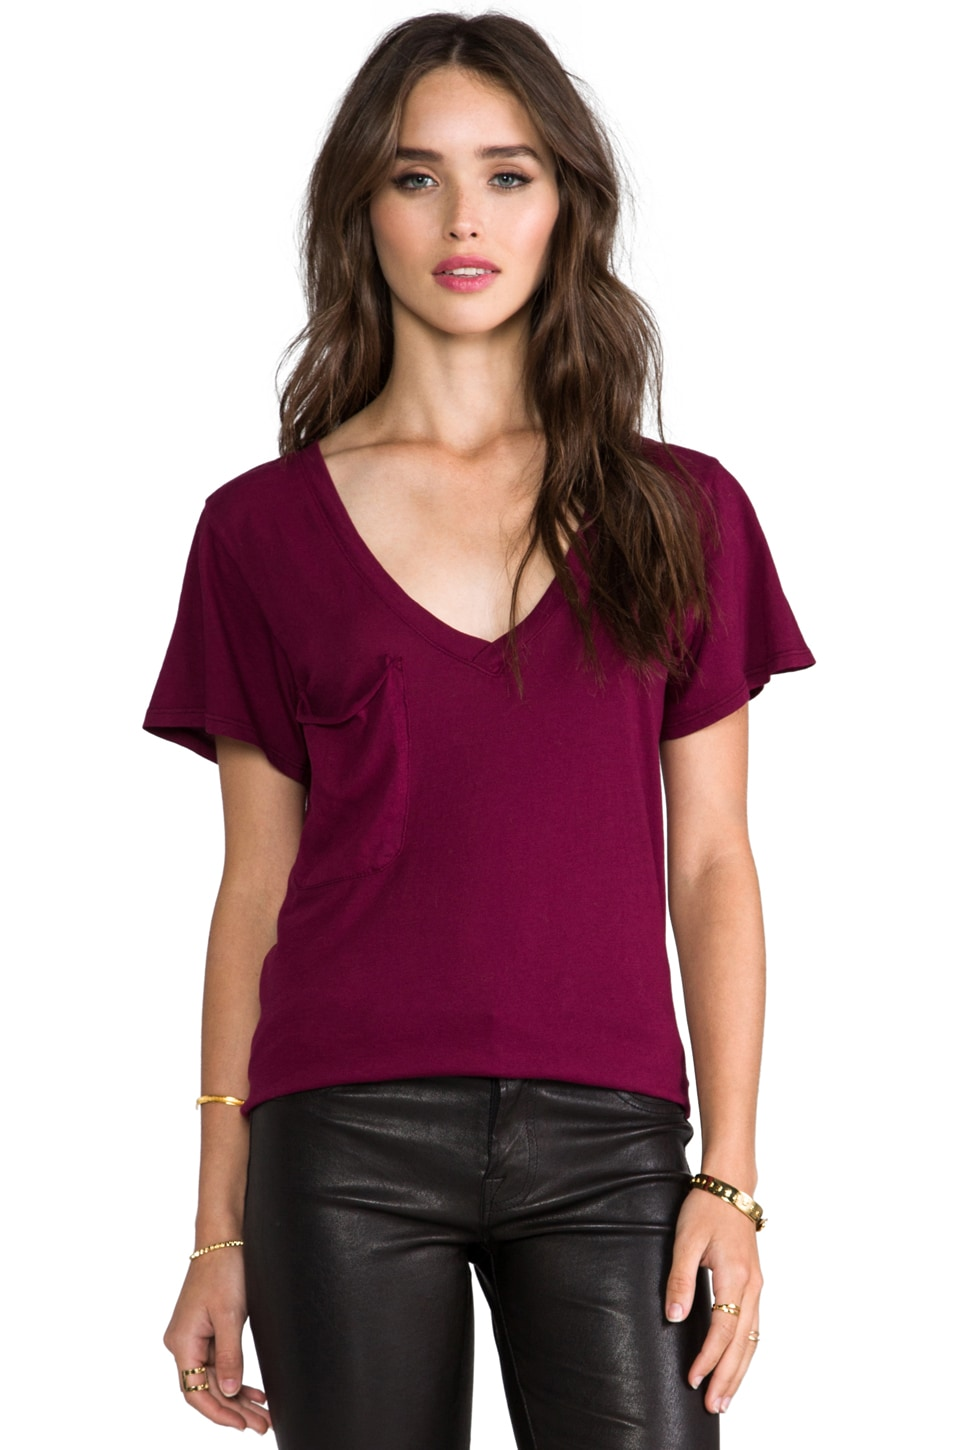 Bobi Light Weight Jersey Pocket Tee in Merlot